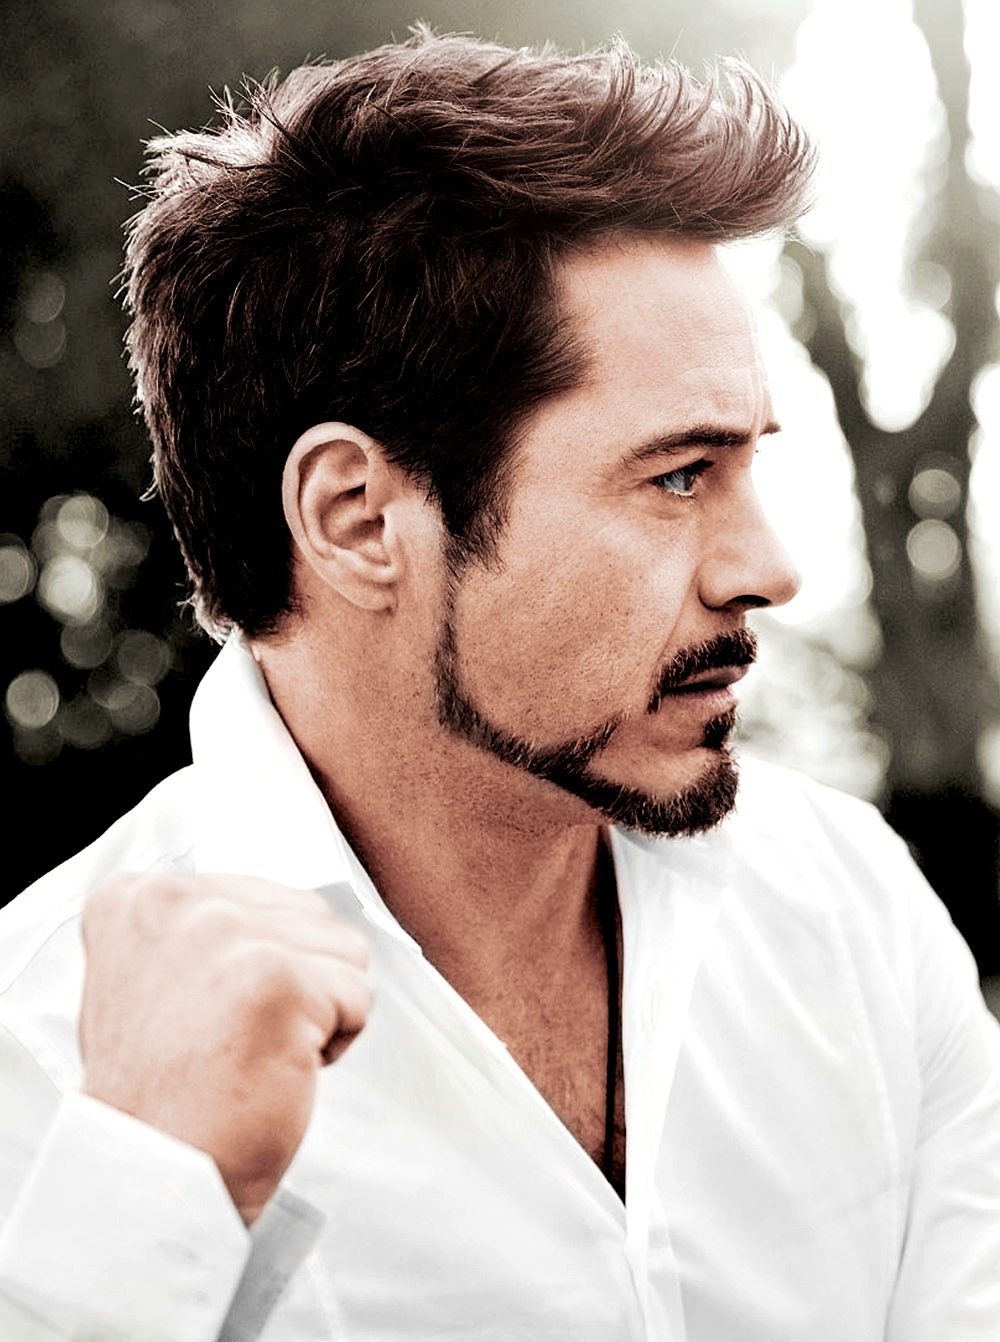 Robert Downey, Jr. - Iron Man Wiki